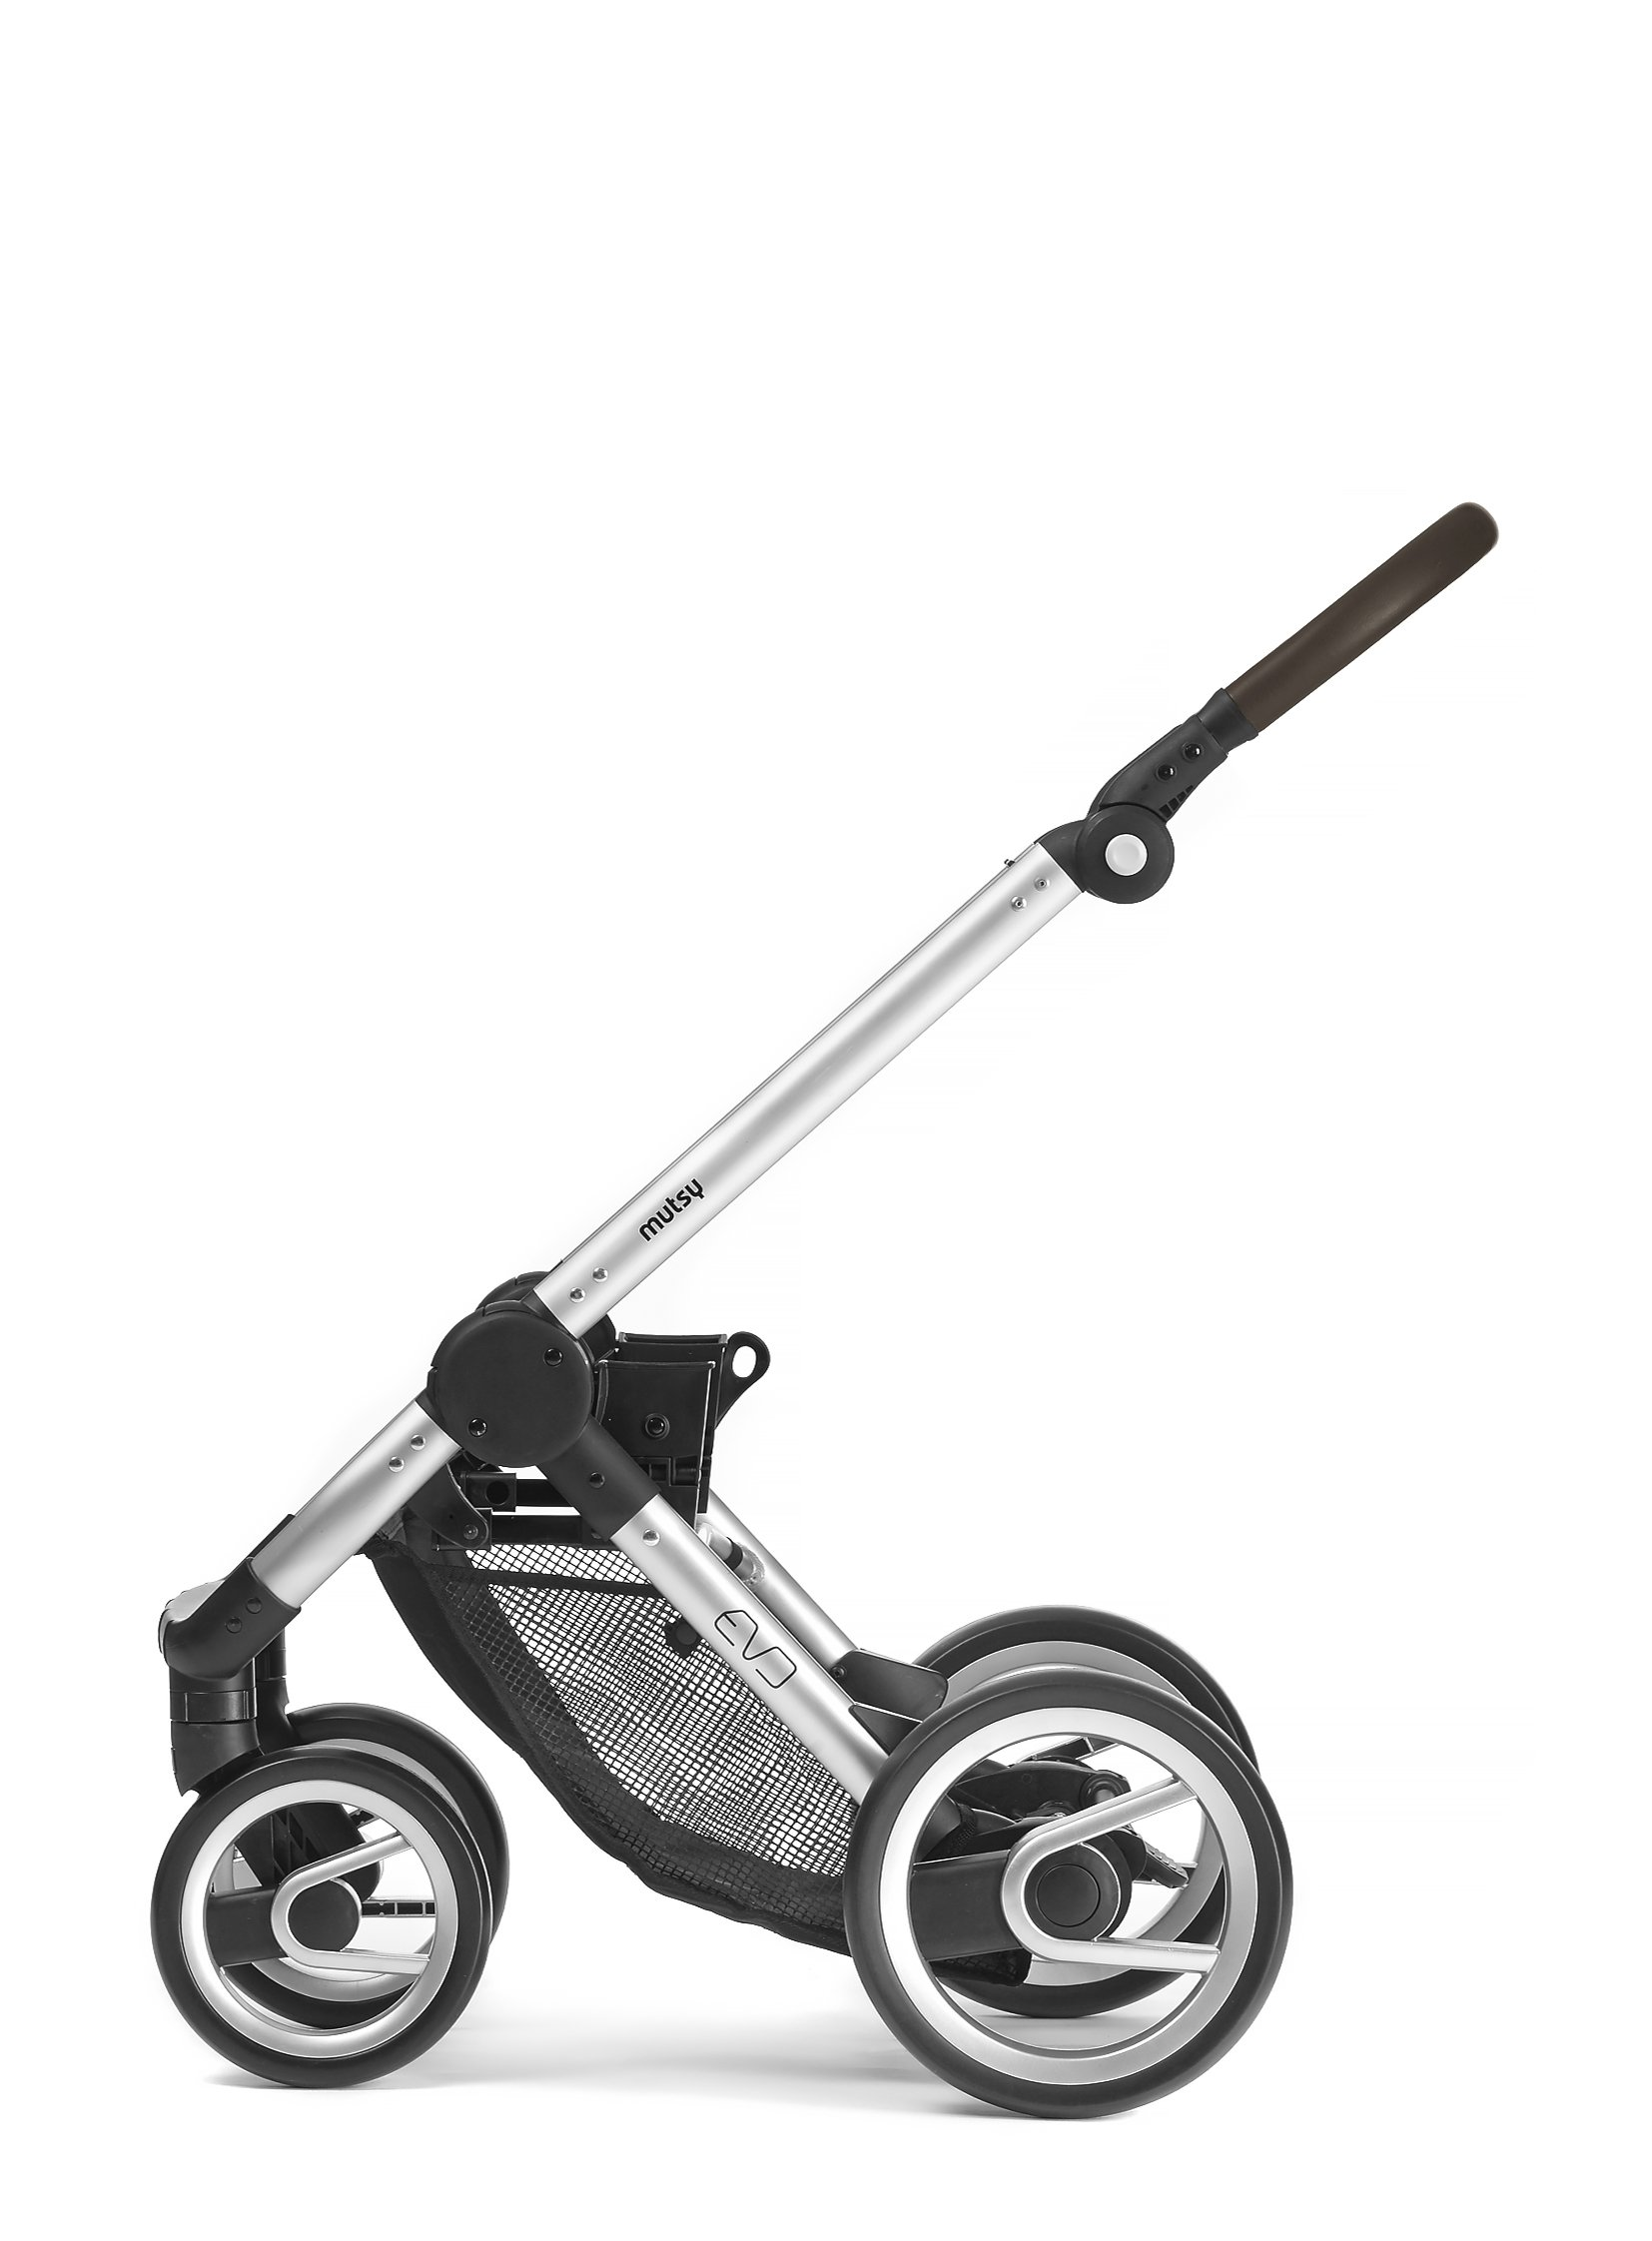 Mutsy Evo Industrial Edition Stroller, Grey with Silver Chassis by Mutsy (Image #3)